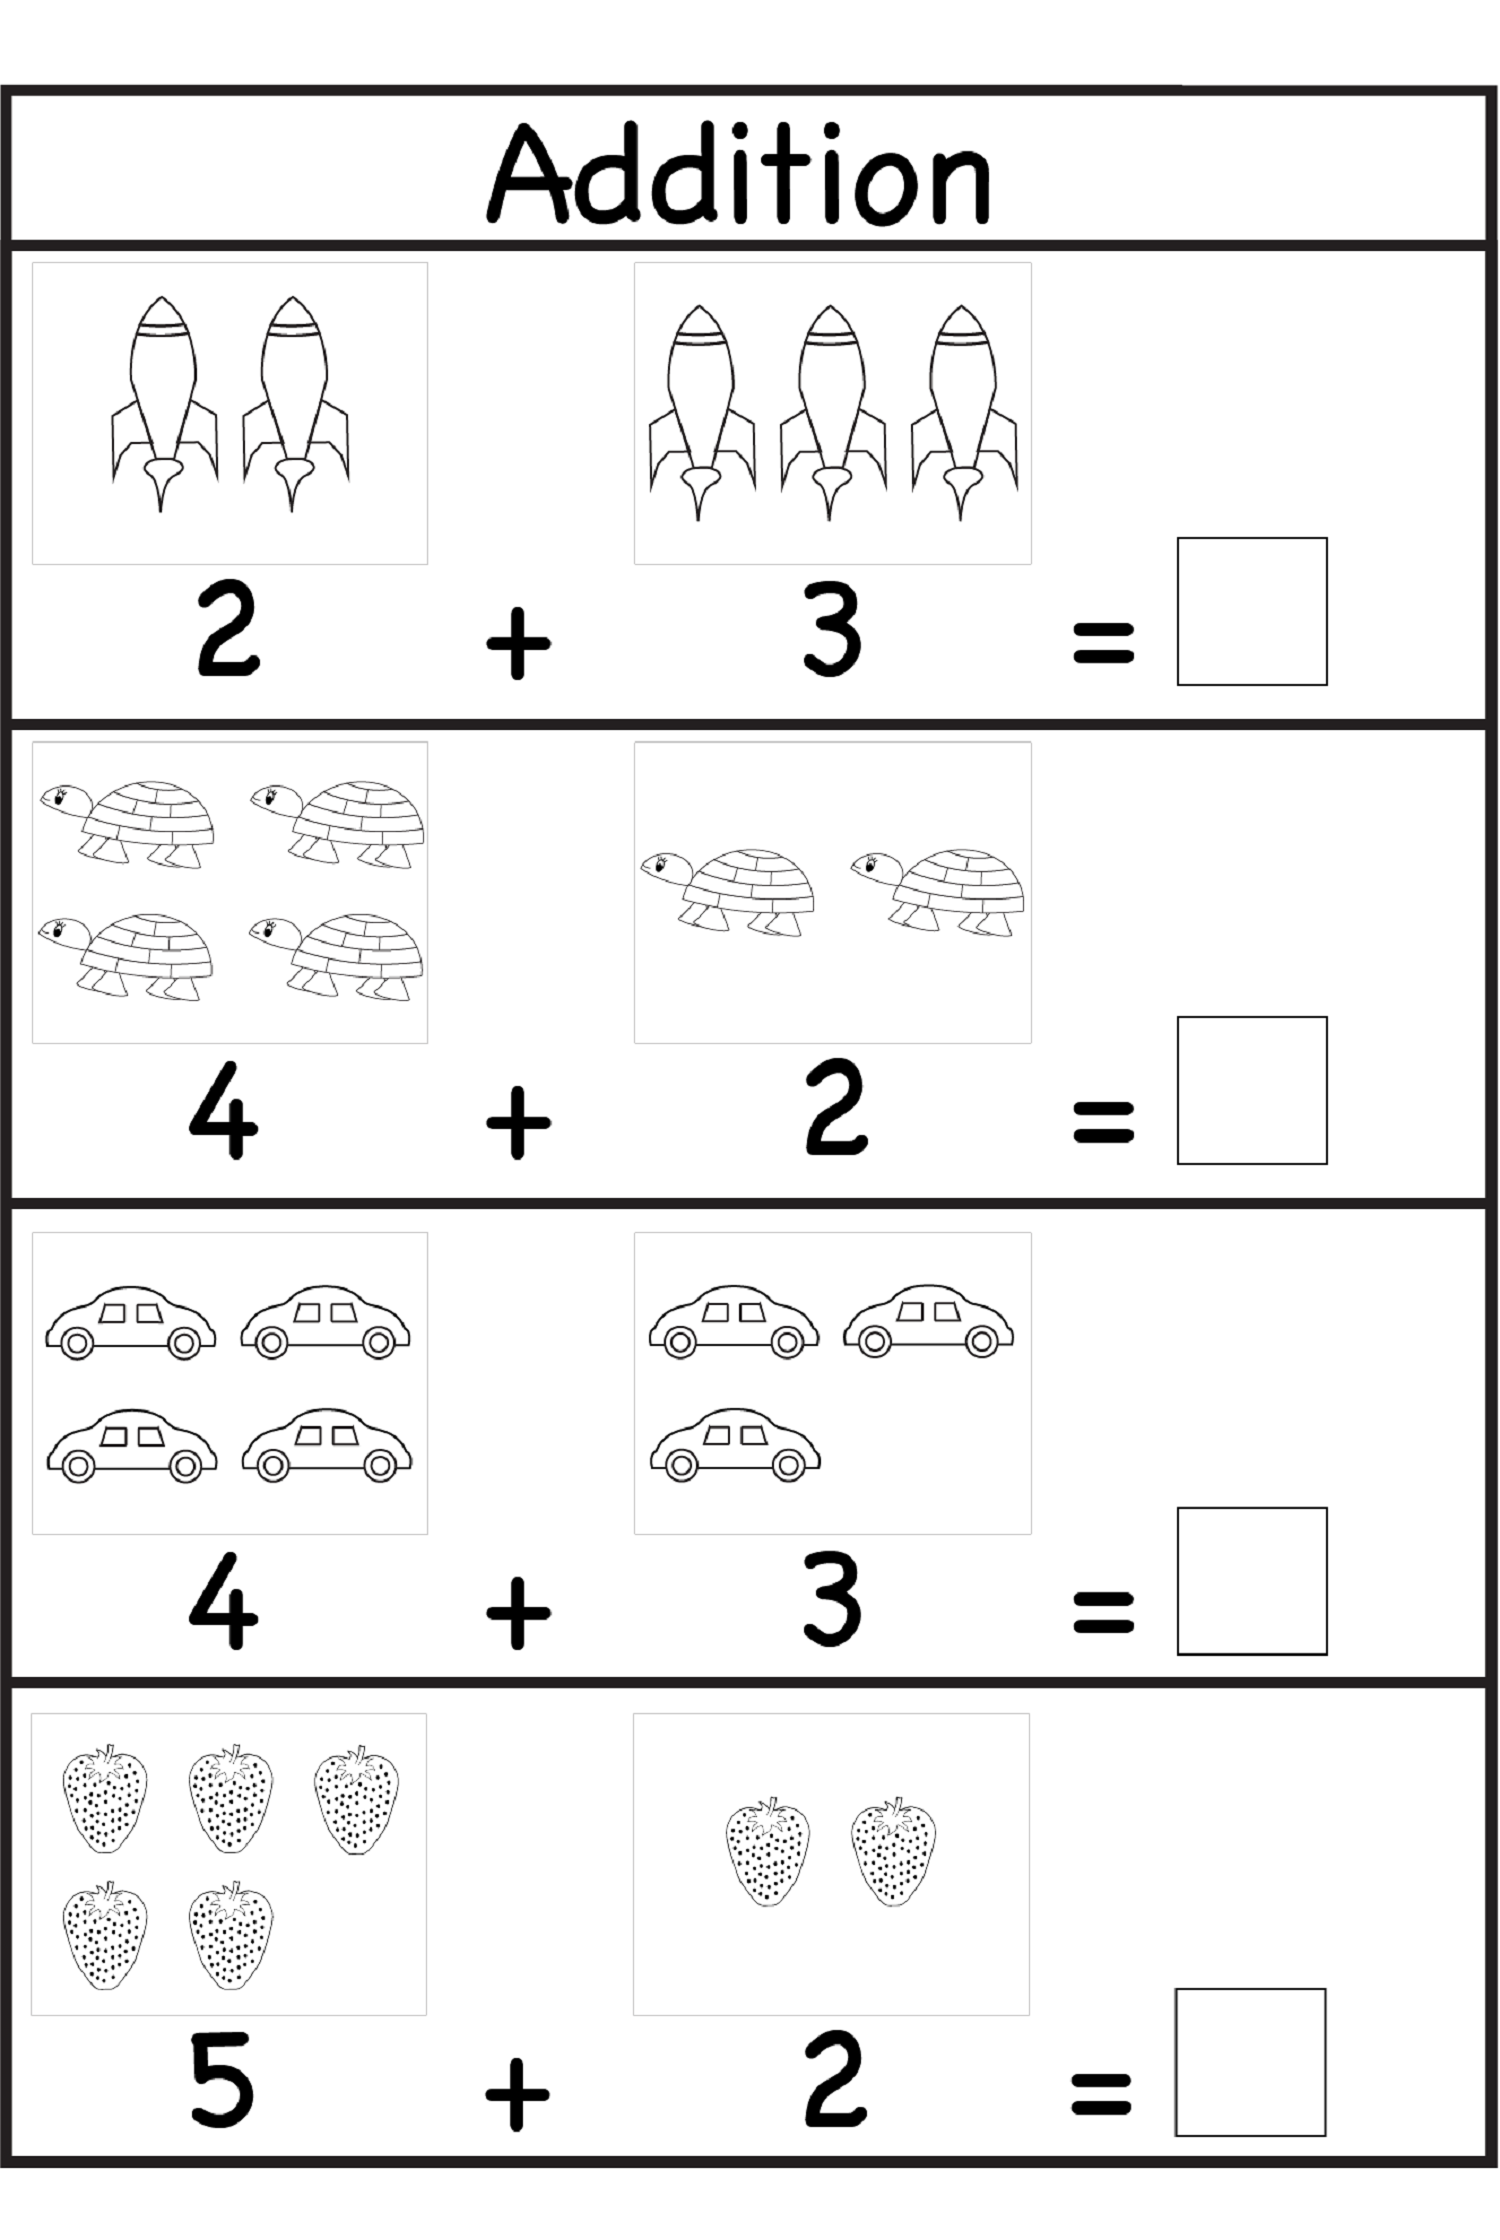 Worksheets Worksheet-for-grade-1 grade 1 worksheet yahoo image search results summer school results